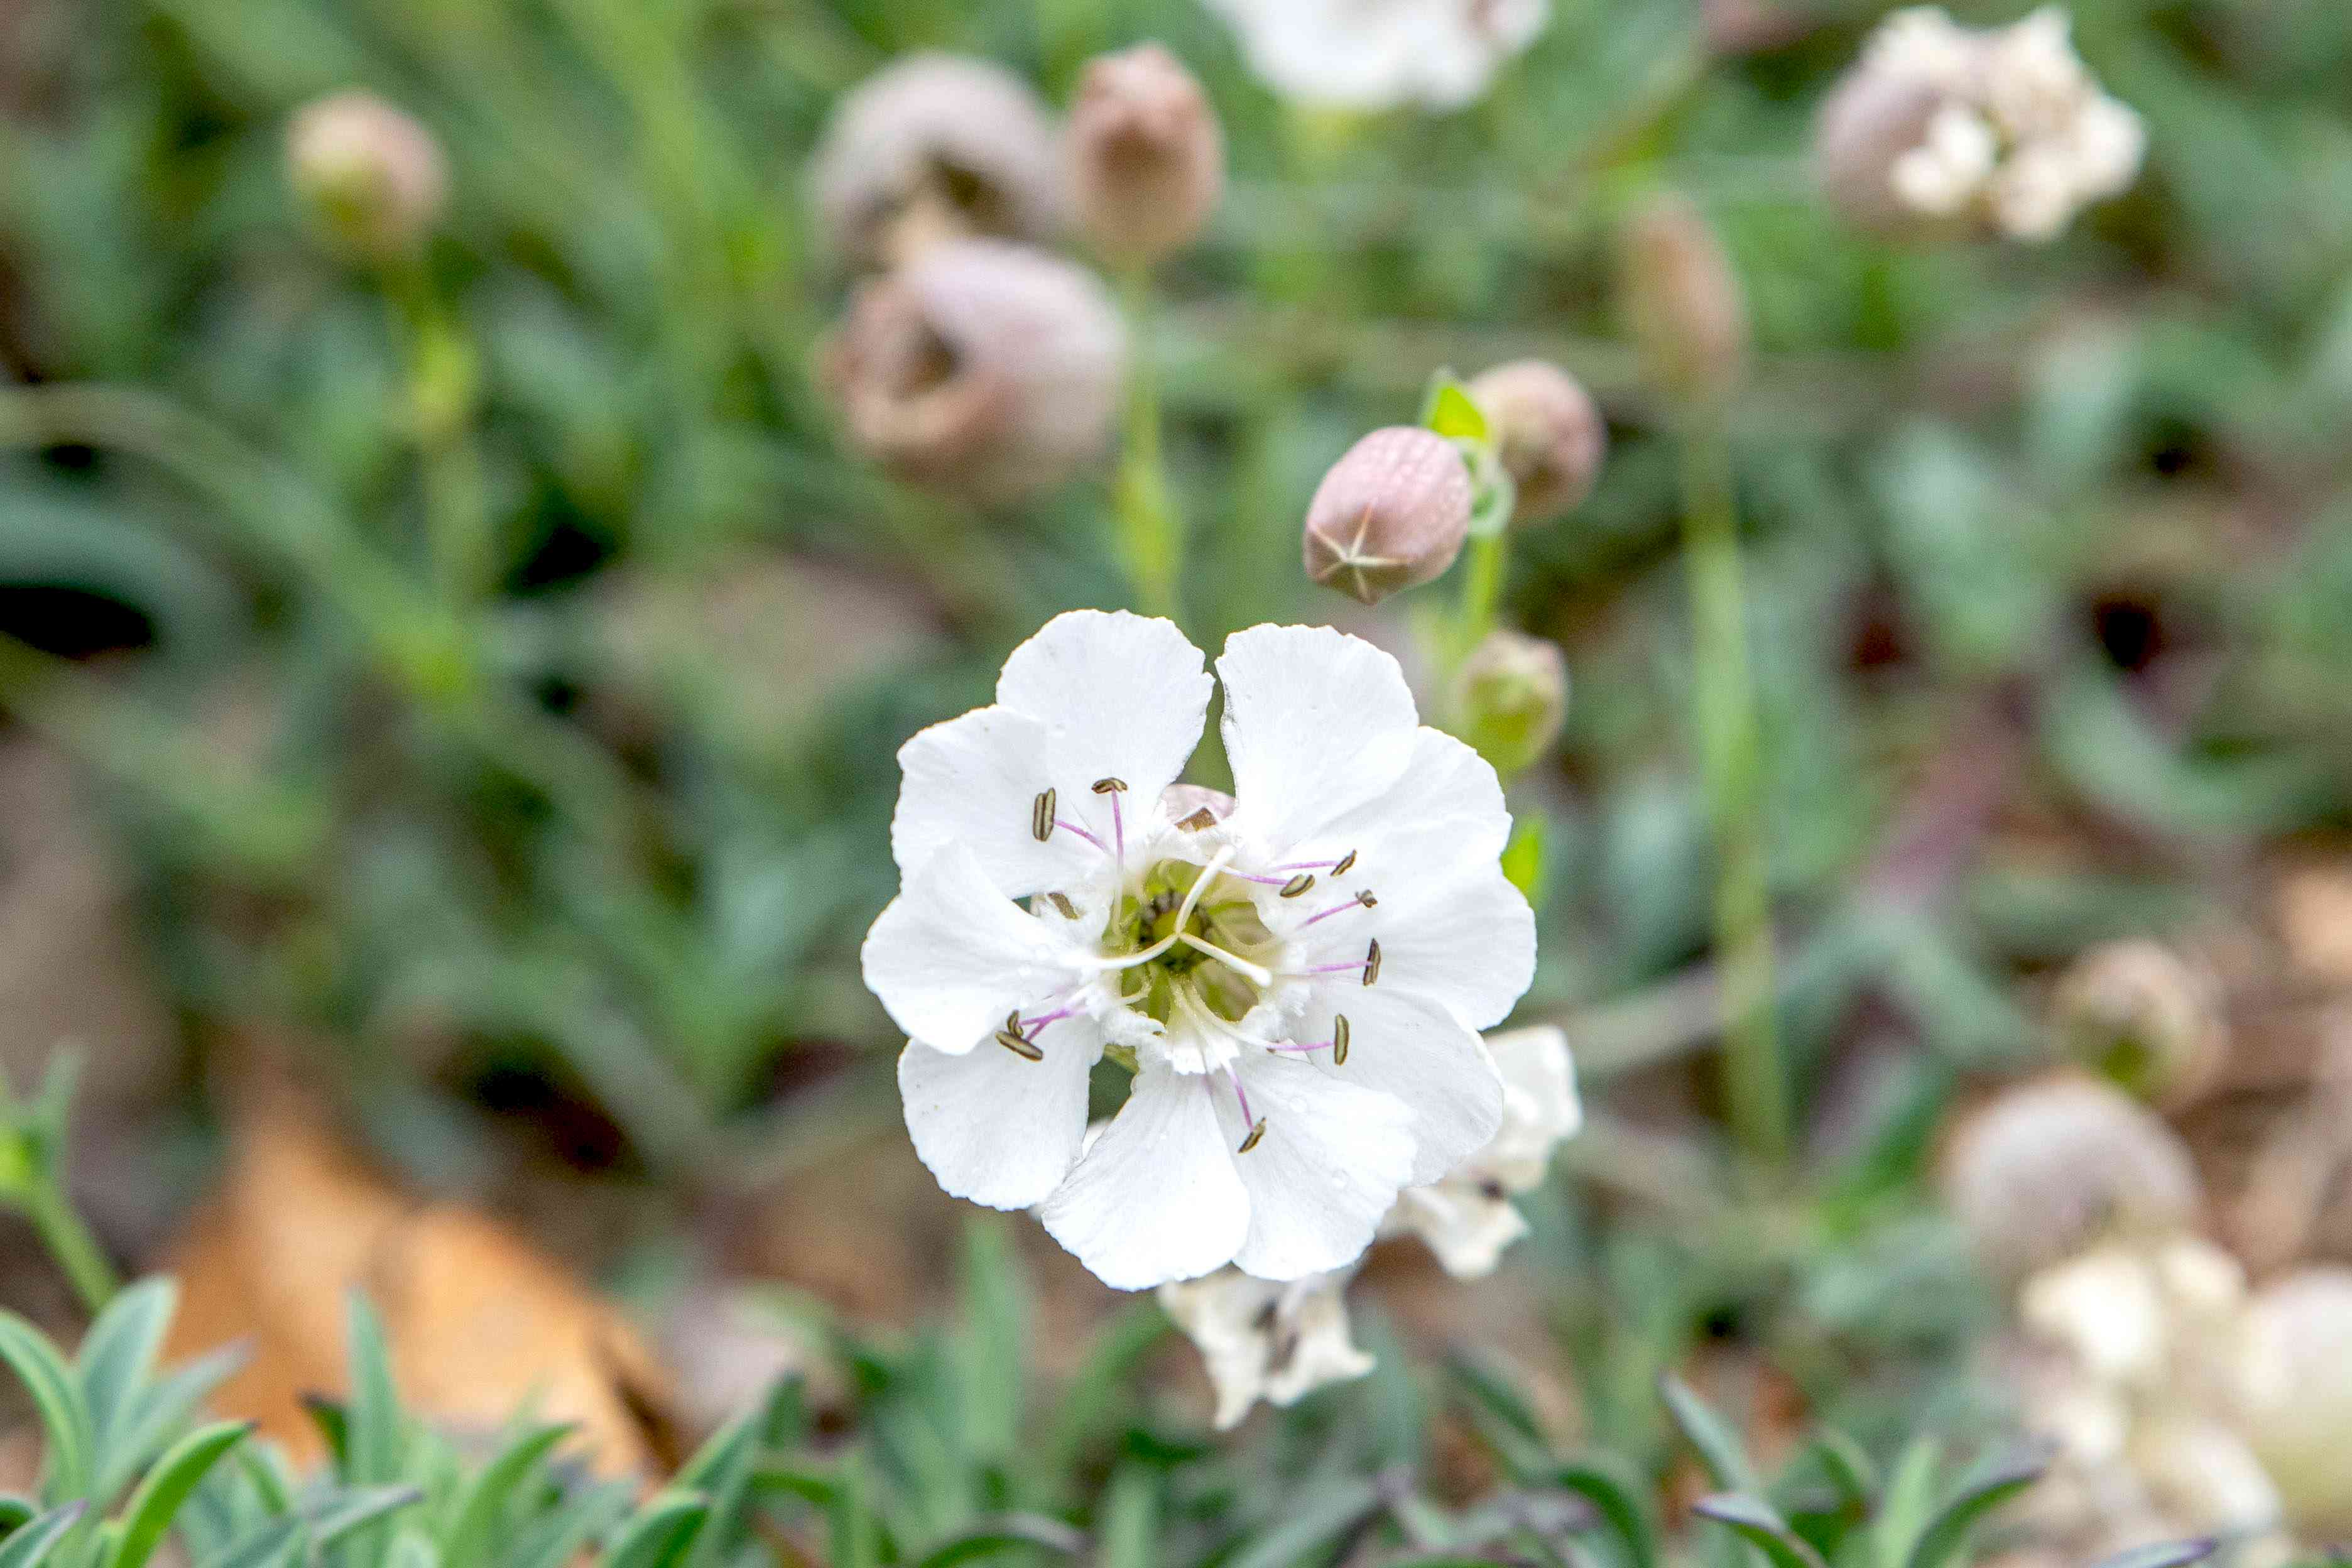 Silene flower with small white petals and pink anthers closeup